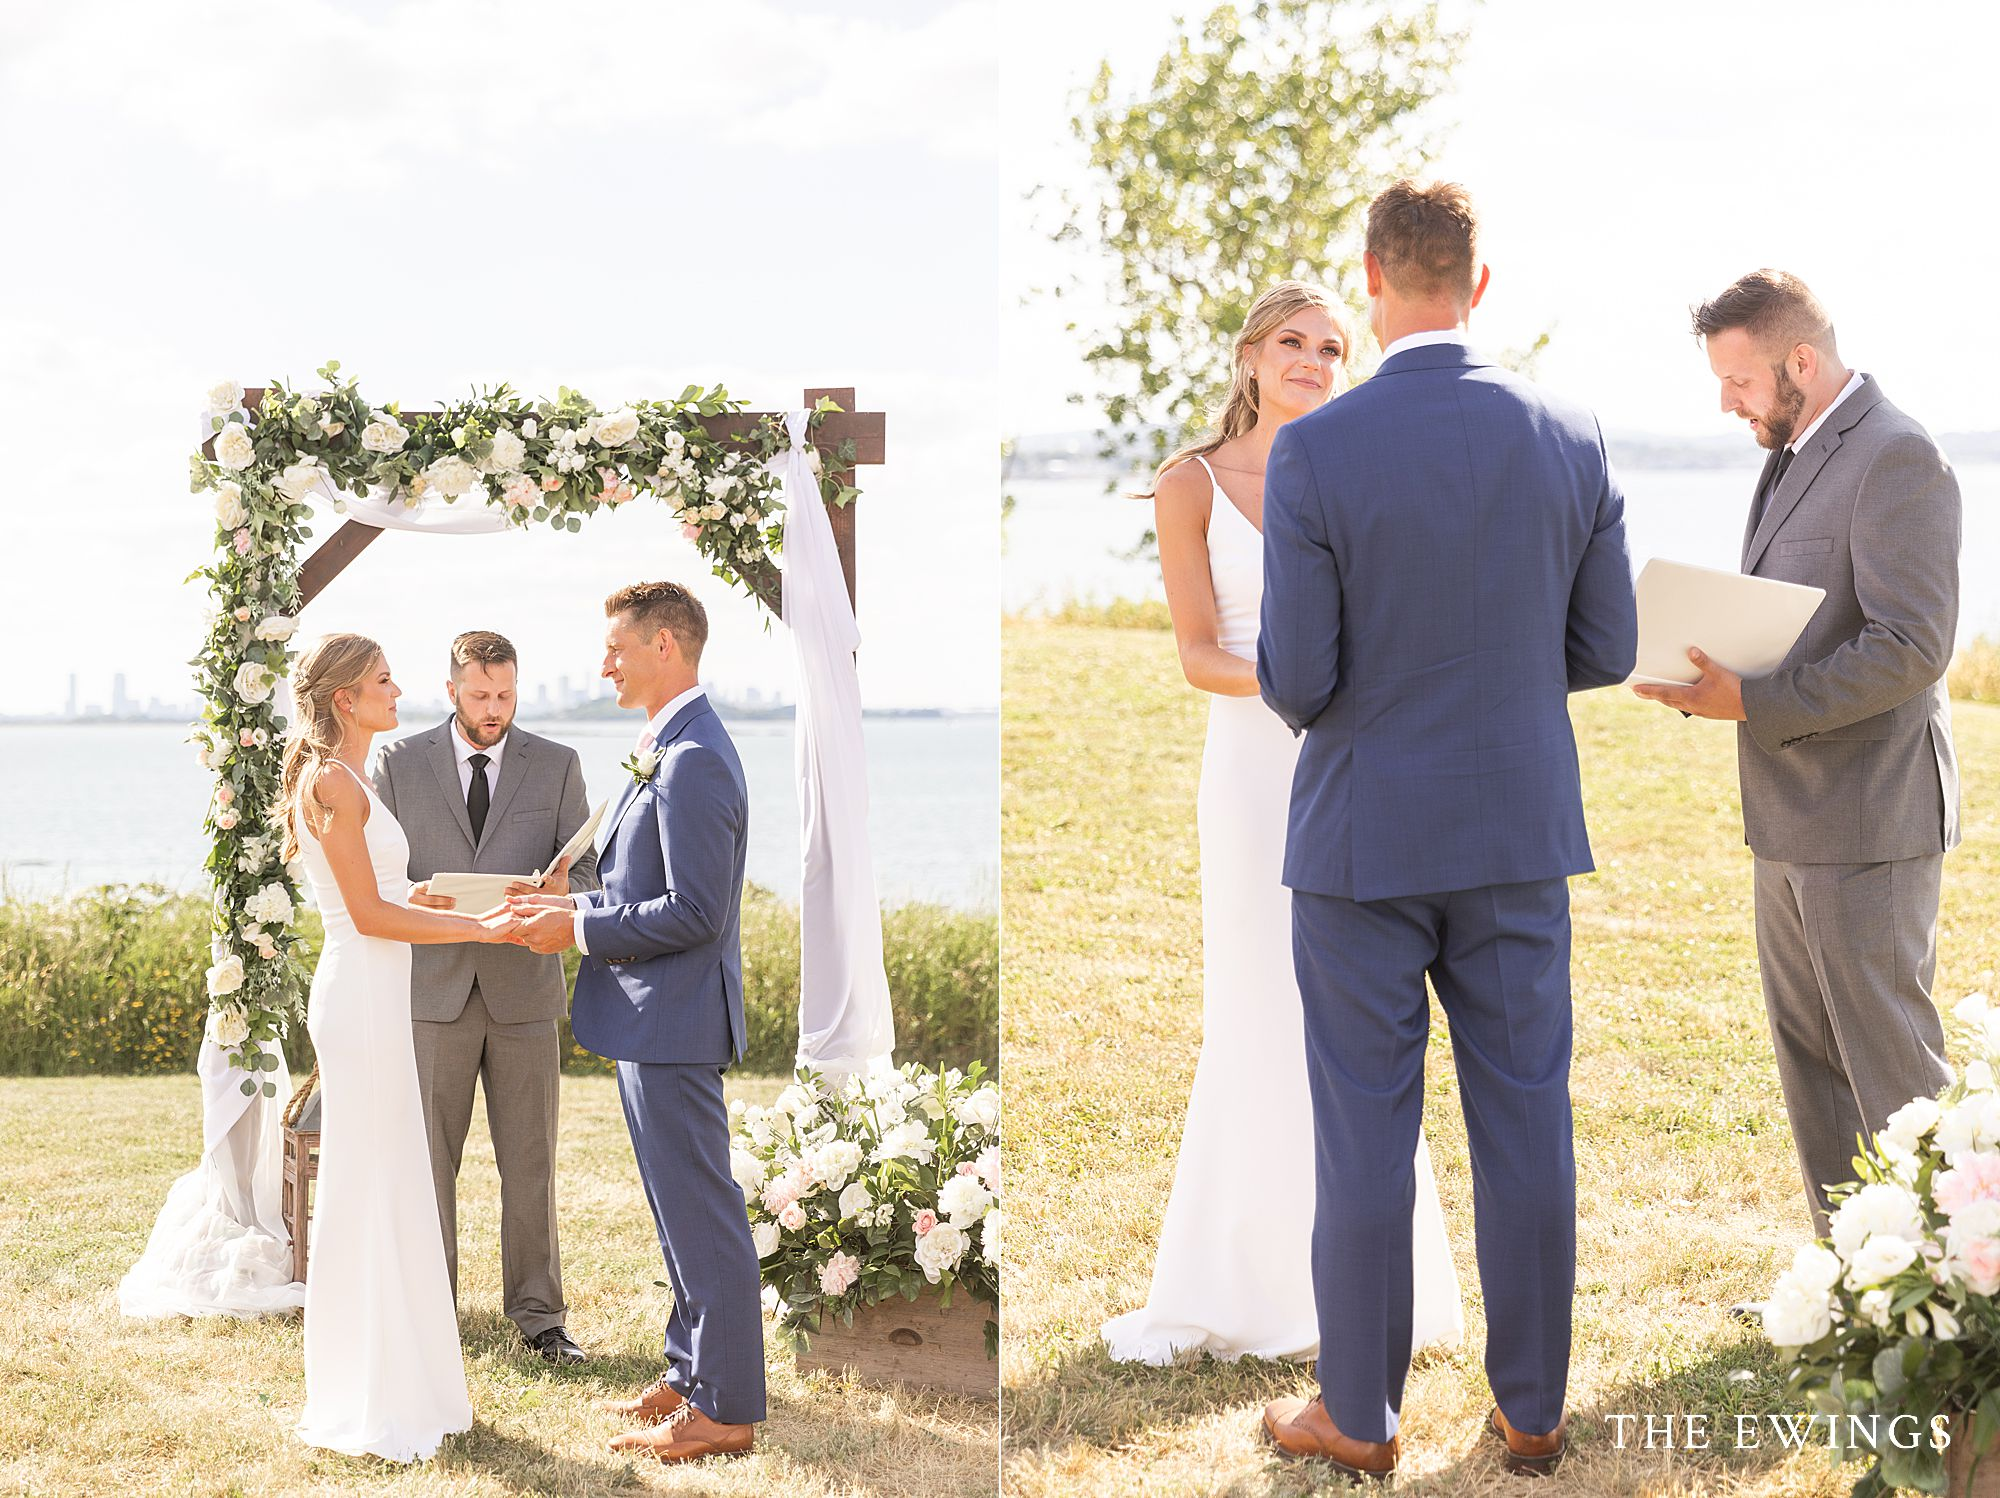 An intimate micro wedding at Nut Island in the Boston Harbor.